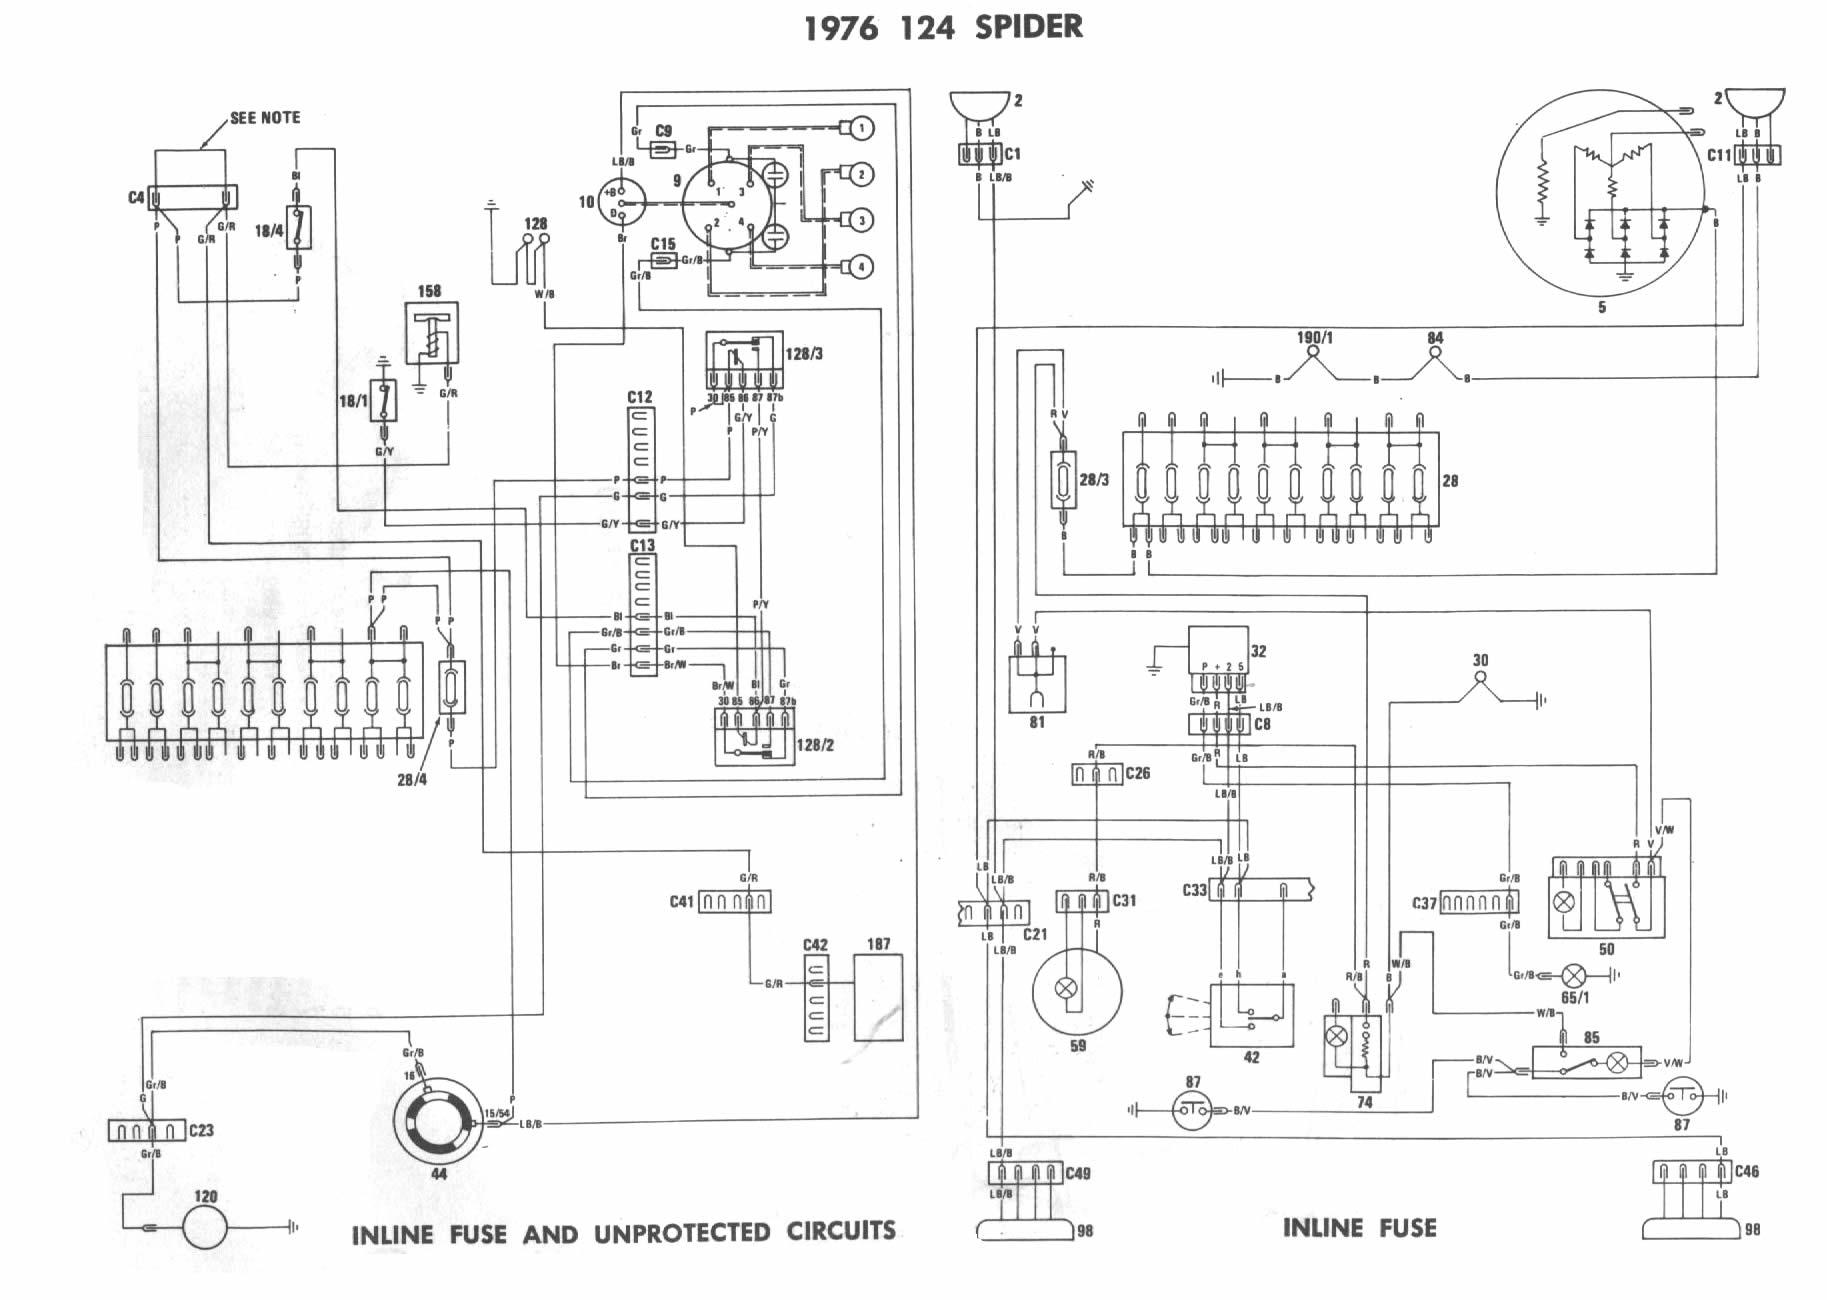 vanagon part diagram all about repair and wiring collections vanagon part diagram fiat 128 sedan wiring naomi wiring diagram vanagon fuse box numbered 1976